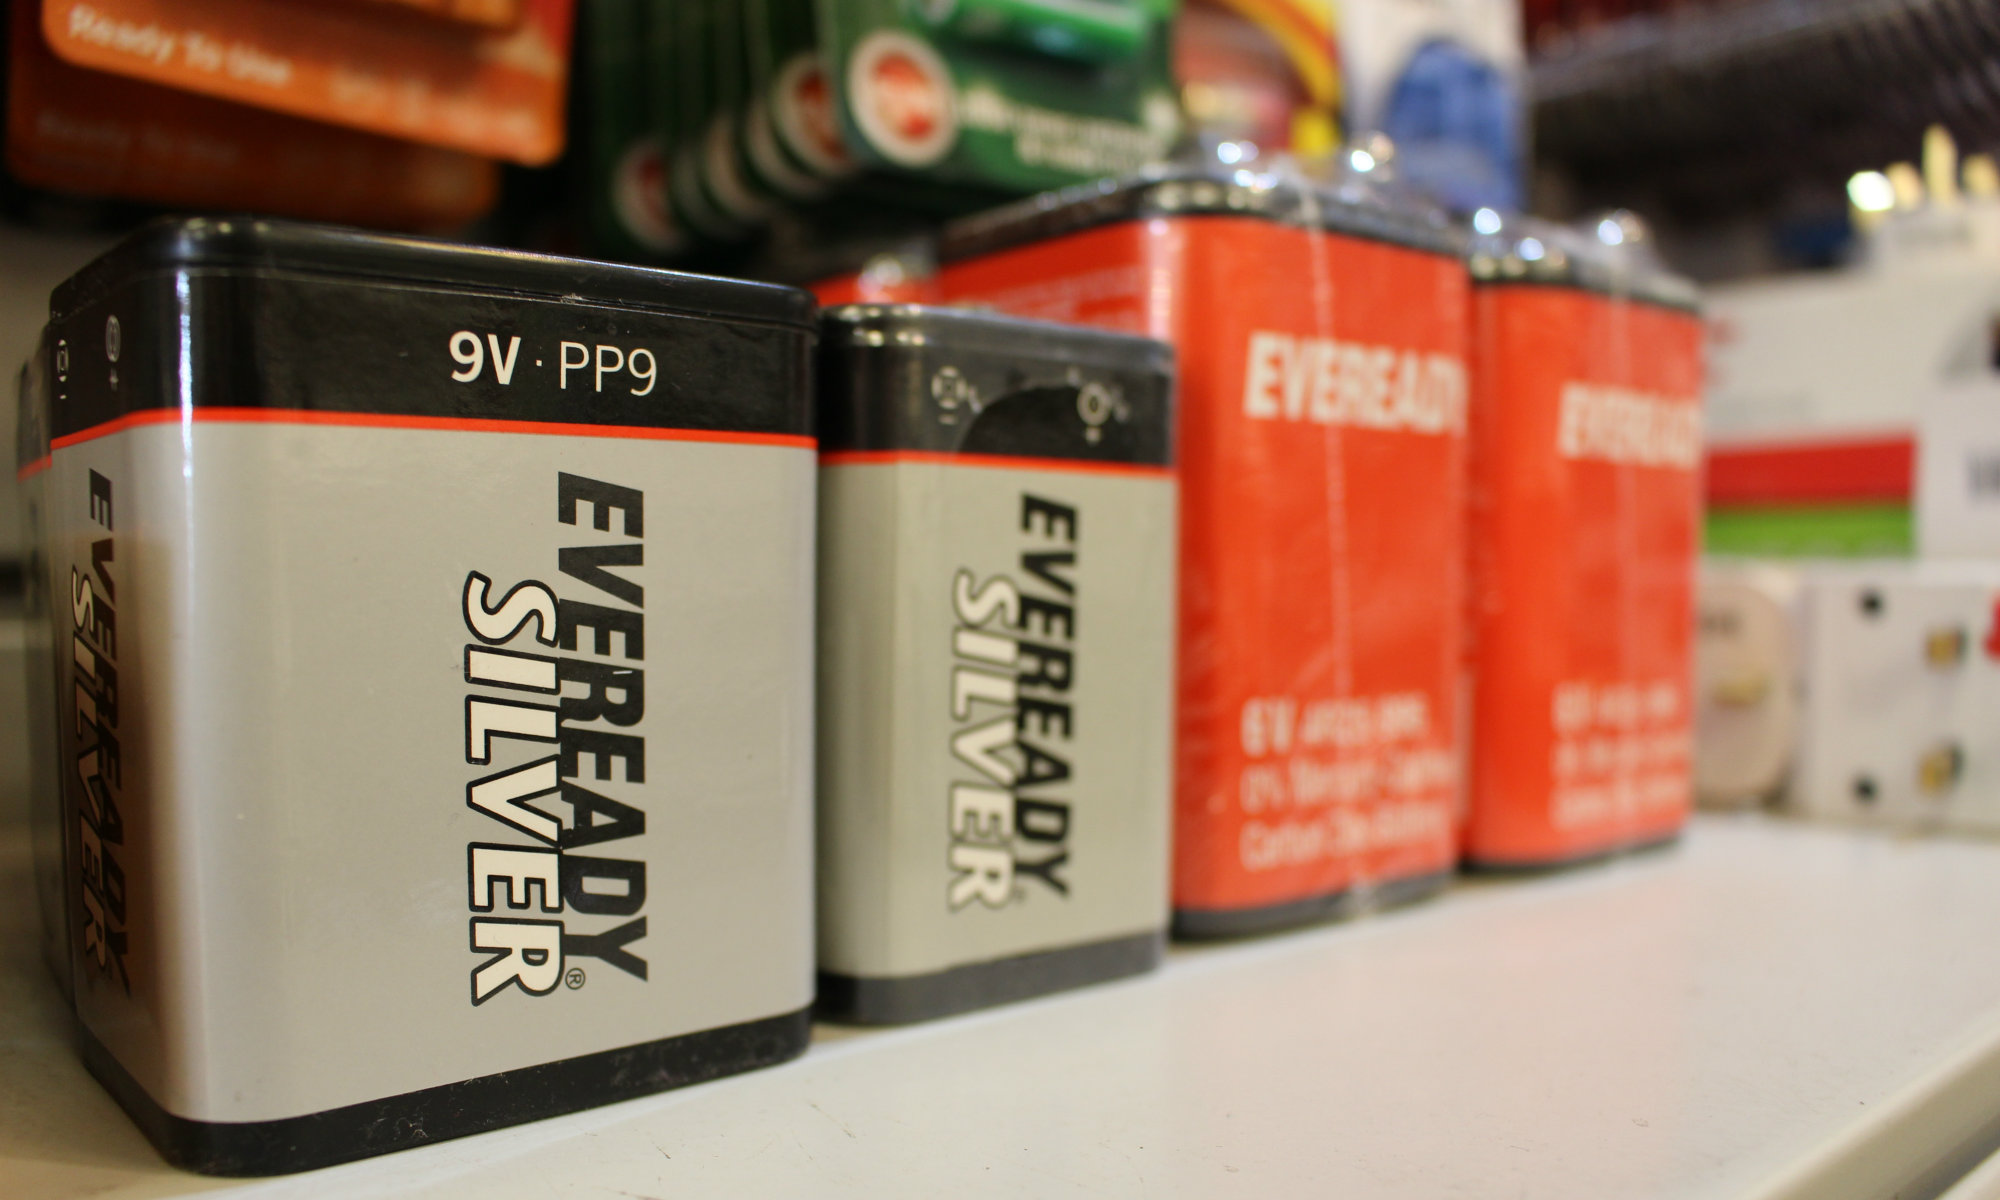 eveready 9v and 6v batteries for old radios